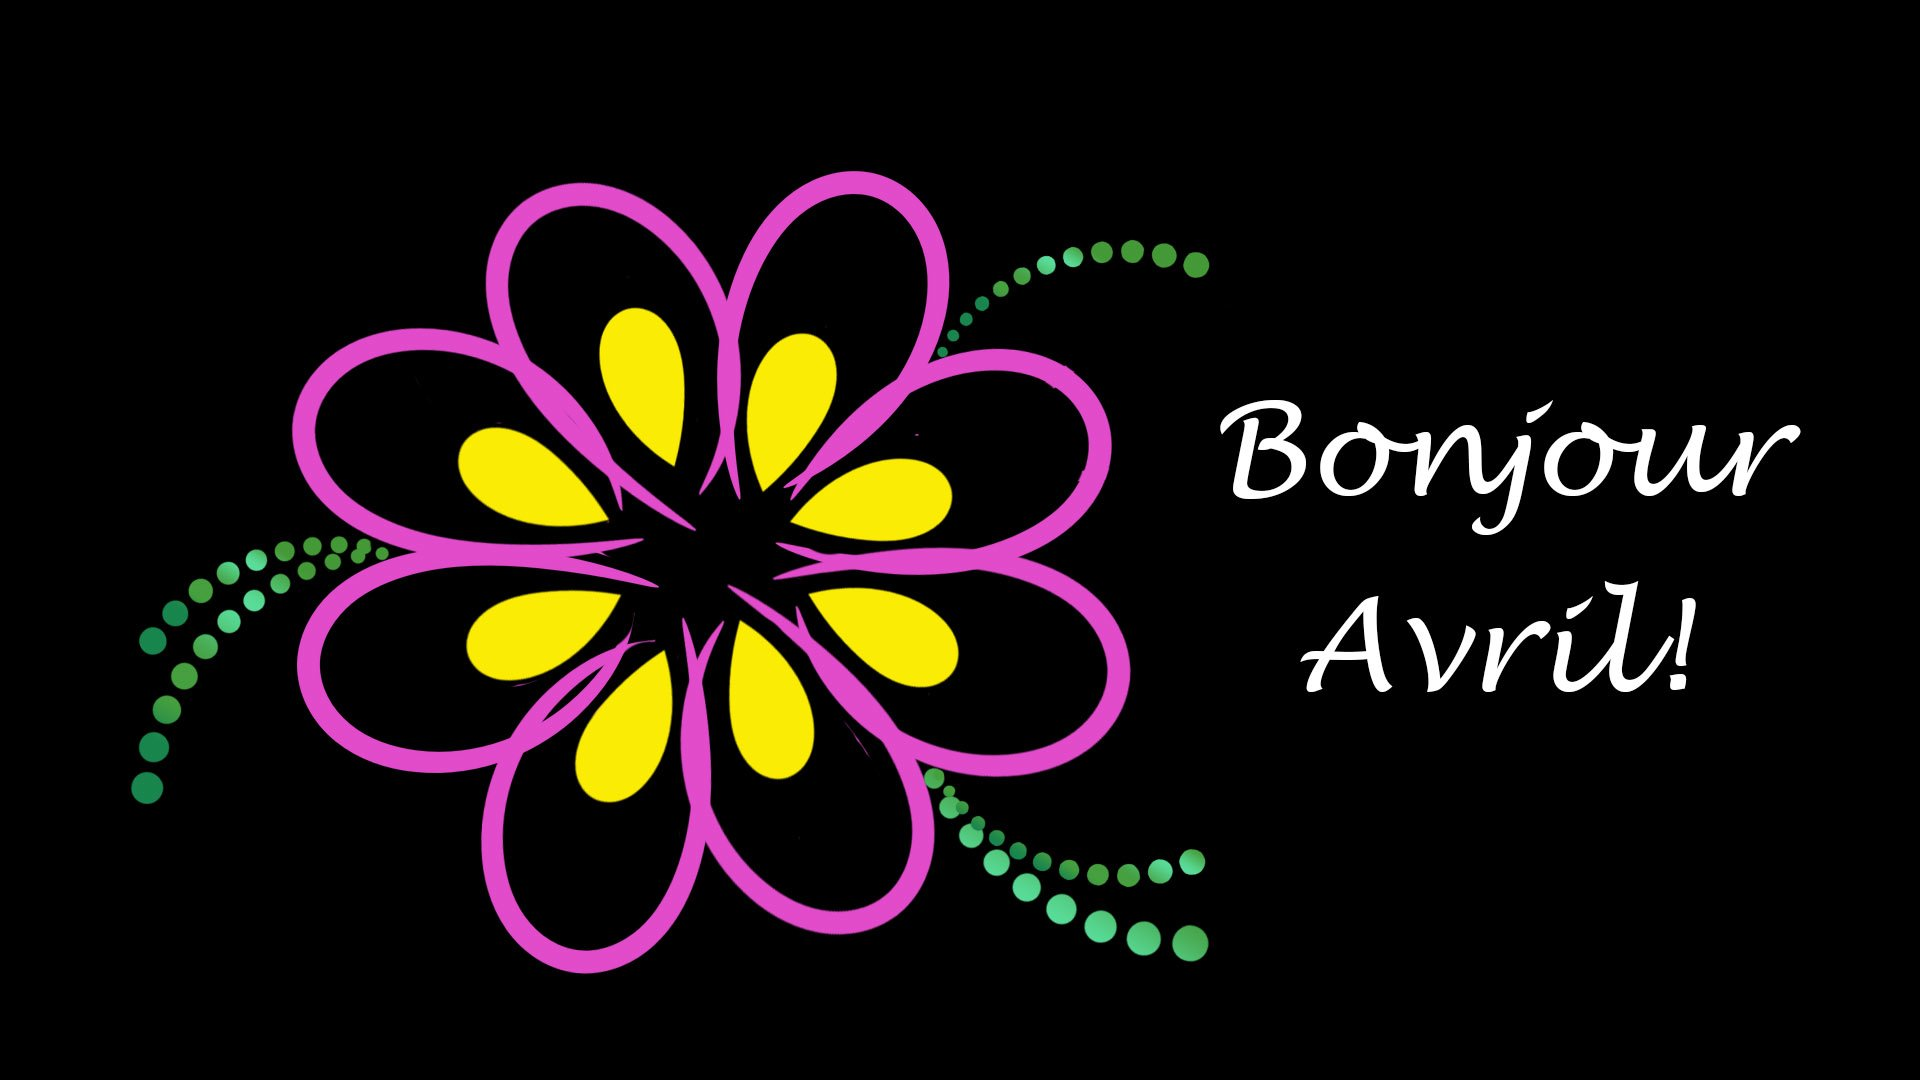 Bonjour Avril HD Wallpaper Background Image 1920x1080 ID 1920x1080